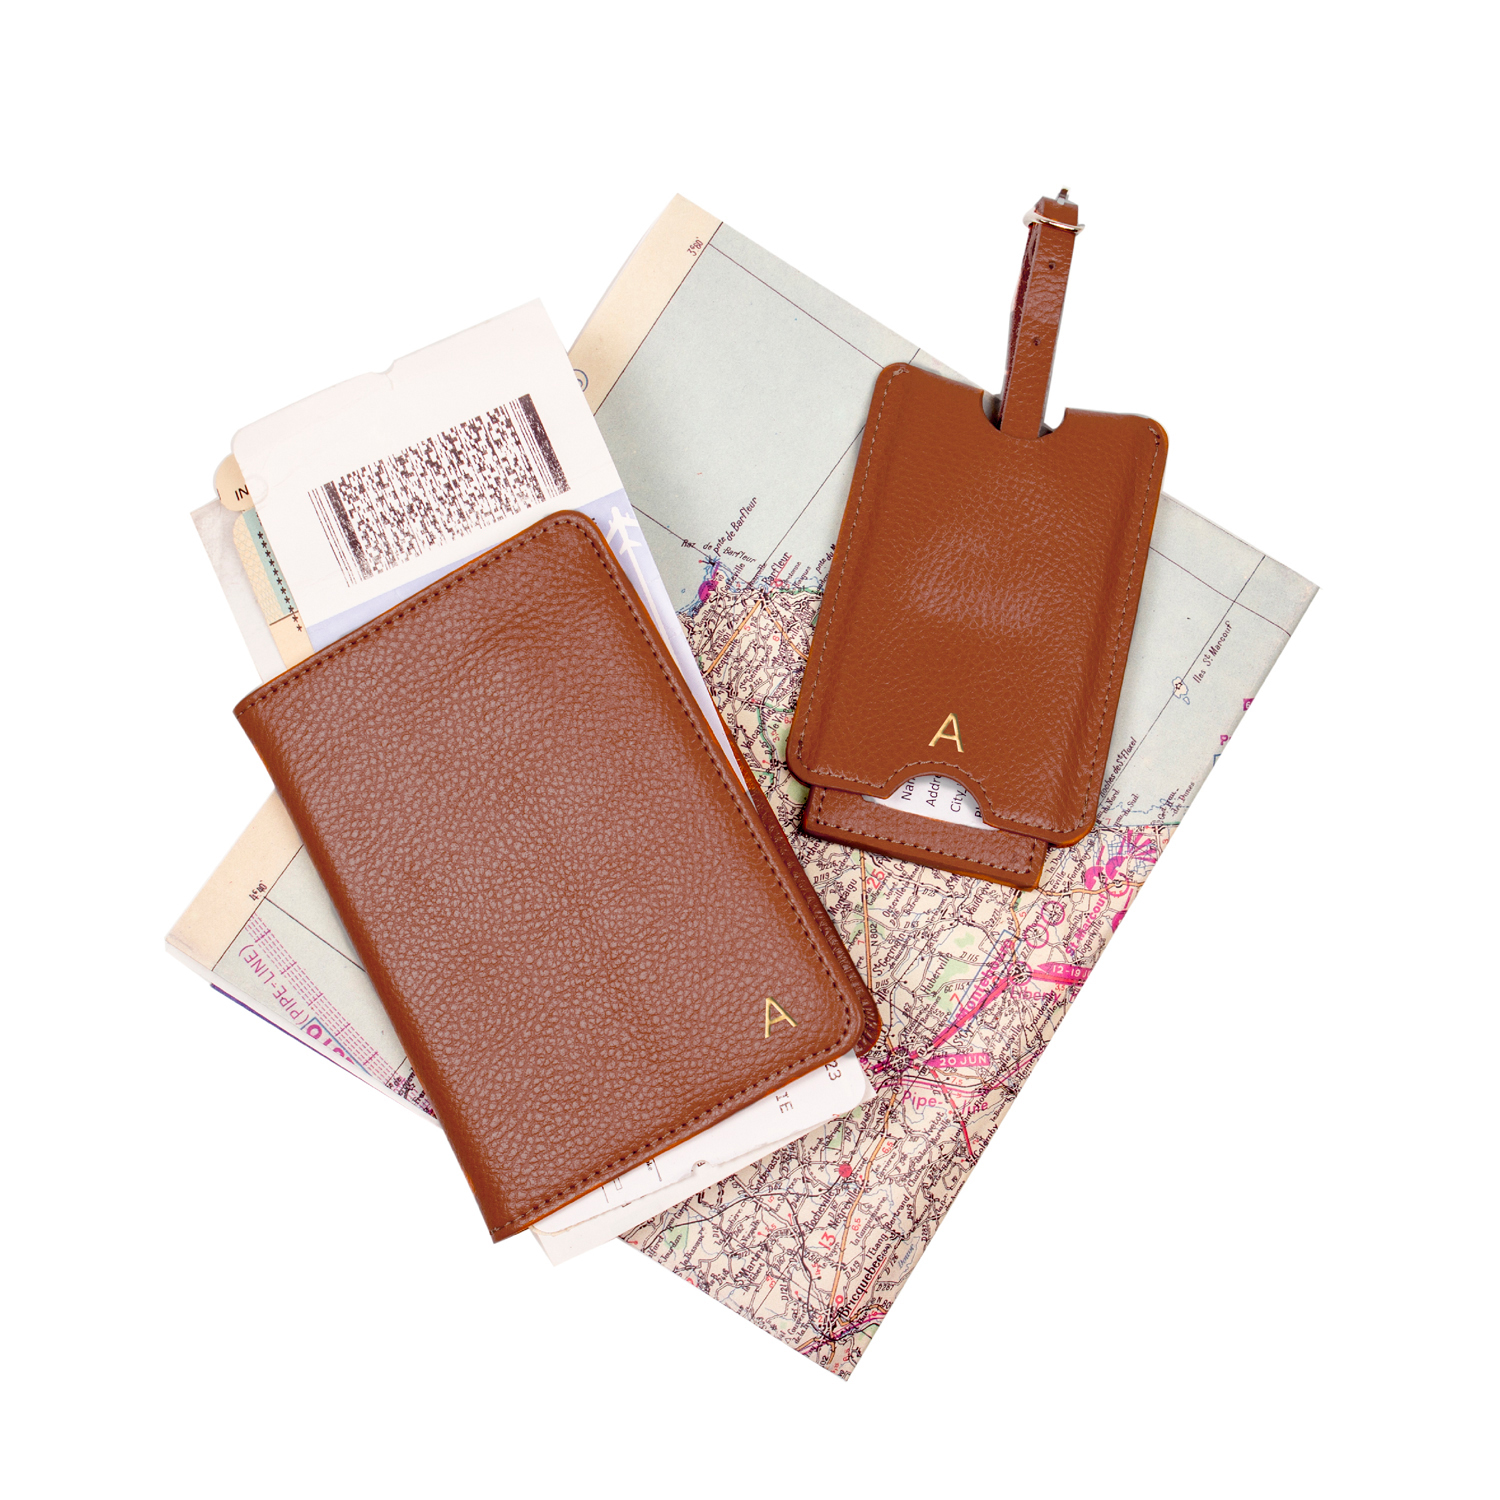 08b9c95bff1 Cathy s Concepts Brown Leather Passport Holder   Luggage Tag Set ...